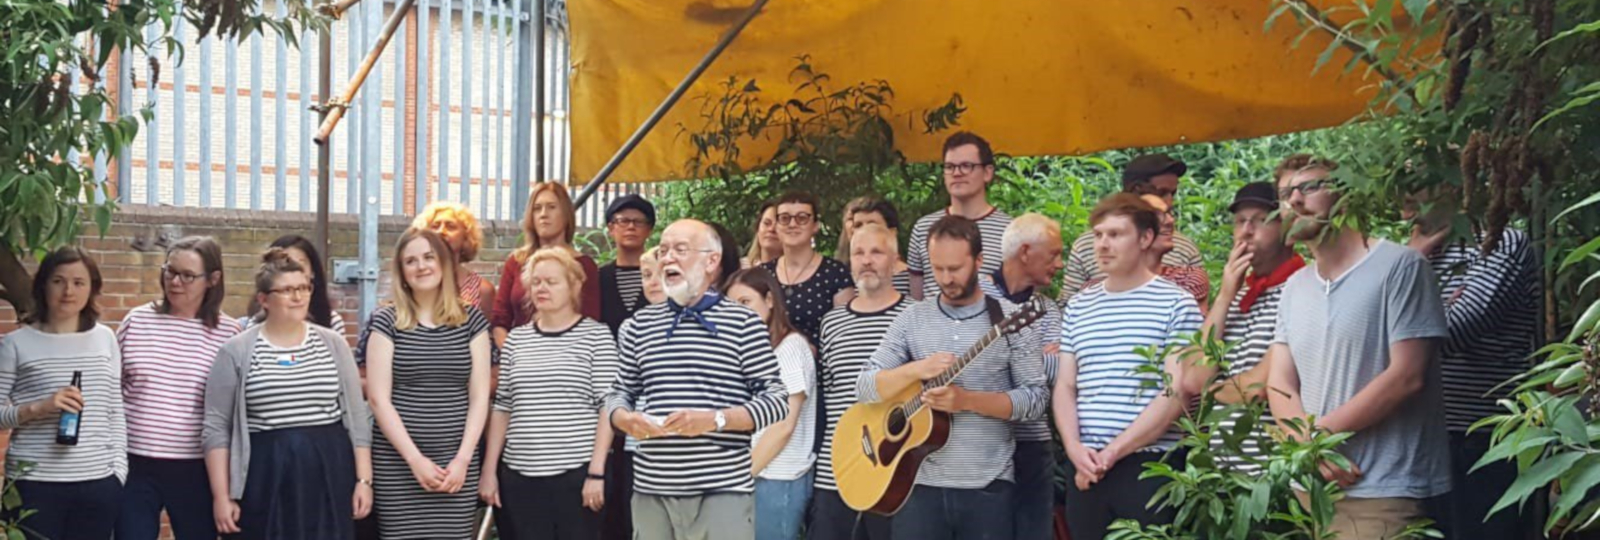 The London Sea Shanty Collective perform at the Curve Garden, Dalston